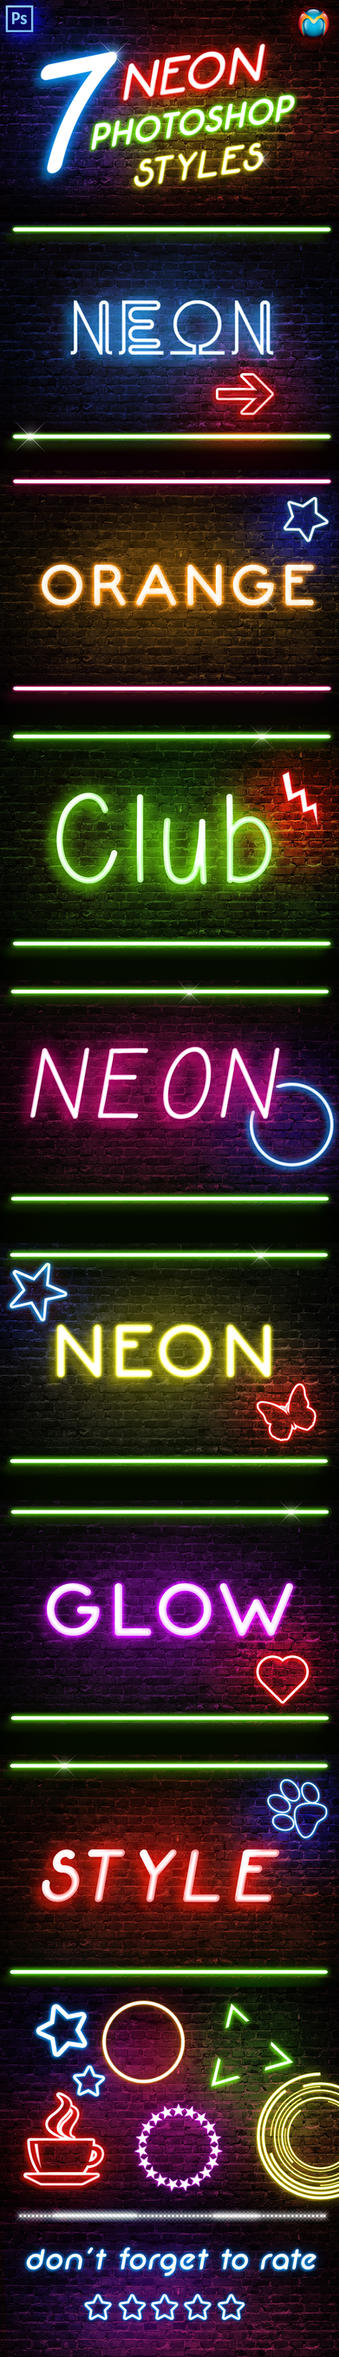 Neon Photoshop Styles by simoke820